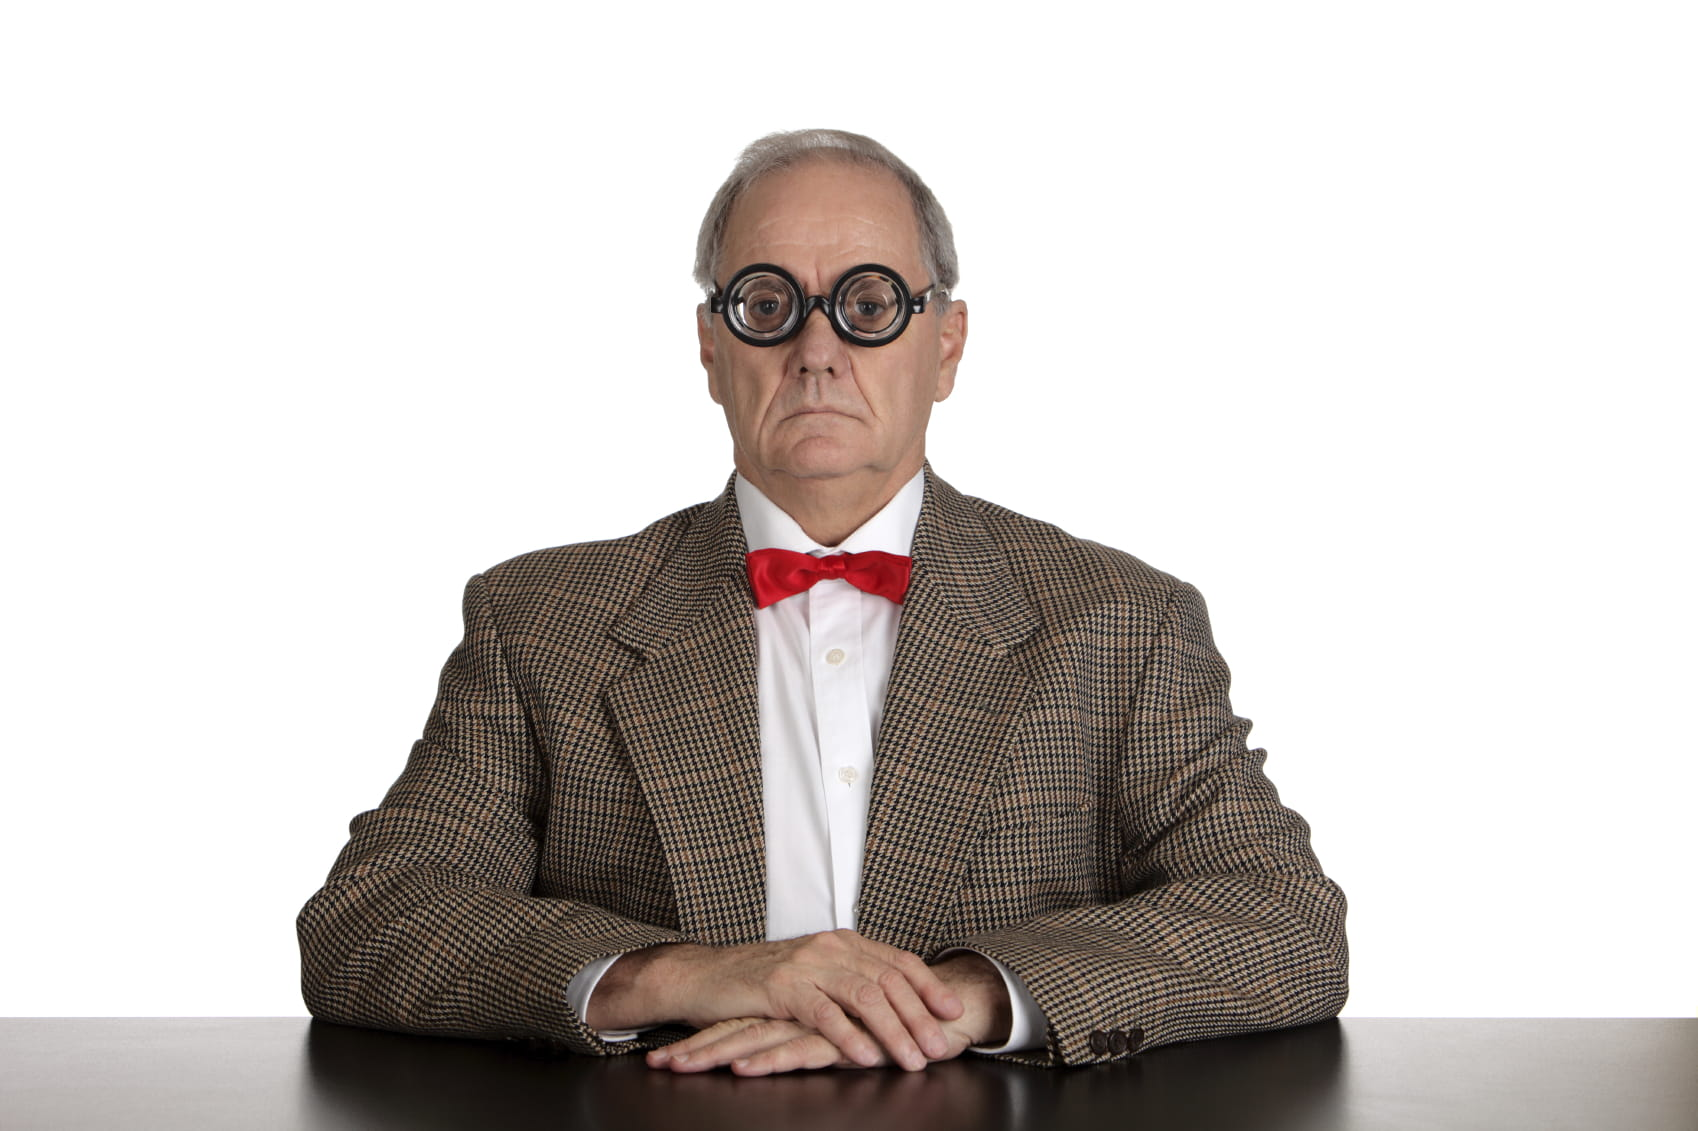 Old white man in tweed and bottle spectacles